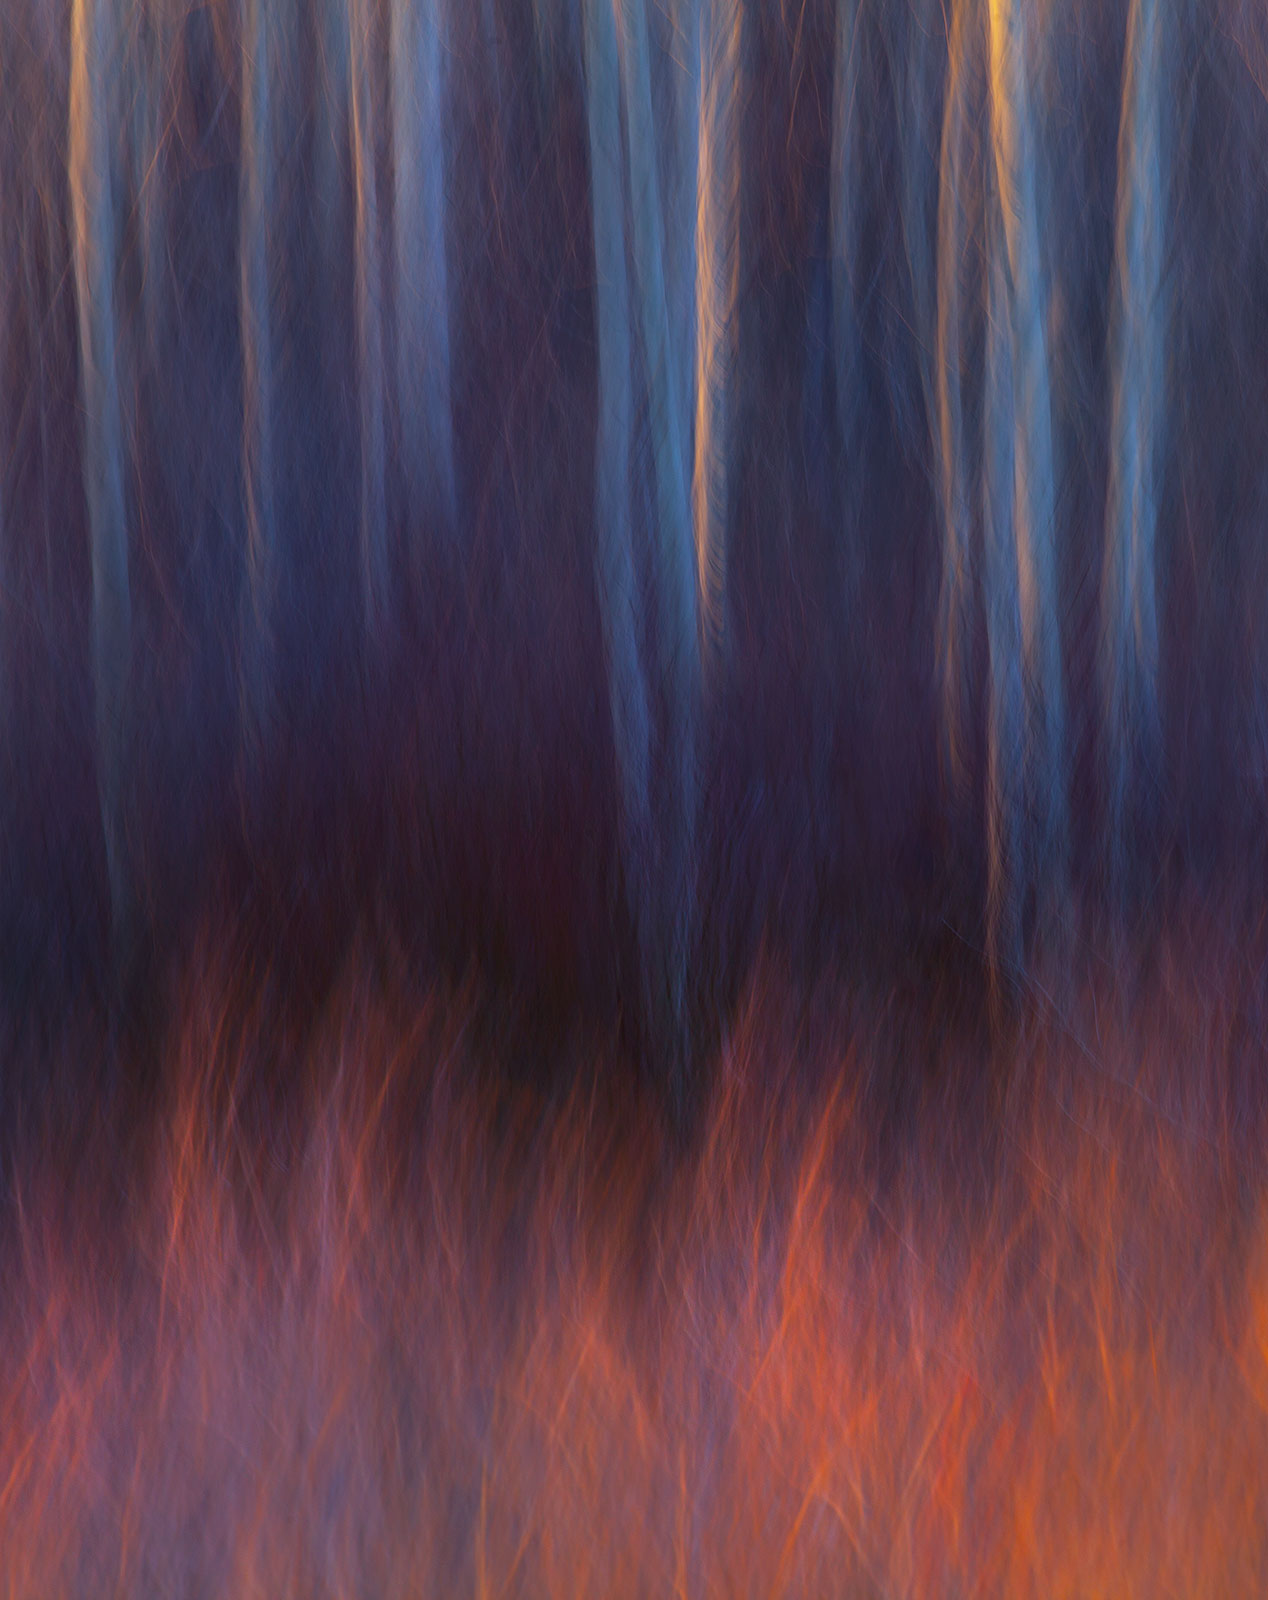 Utah, Boulder Mountain, Willows, Aspen, Abstract, motion, photo